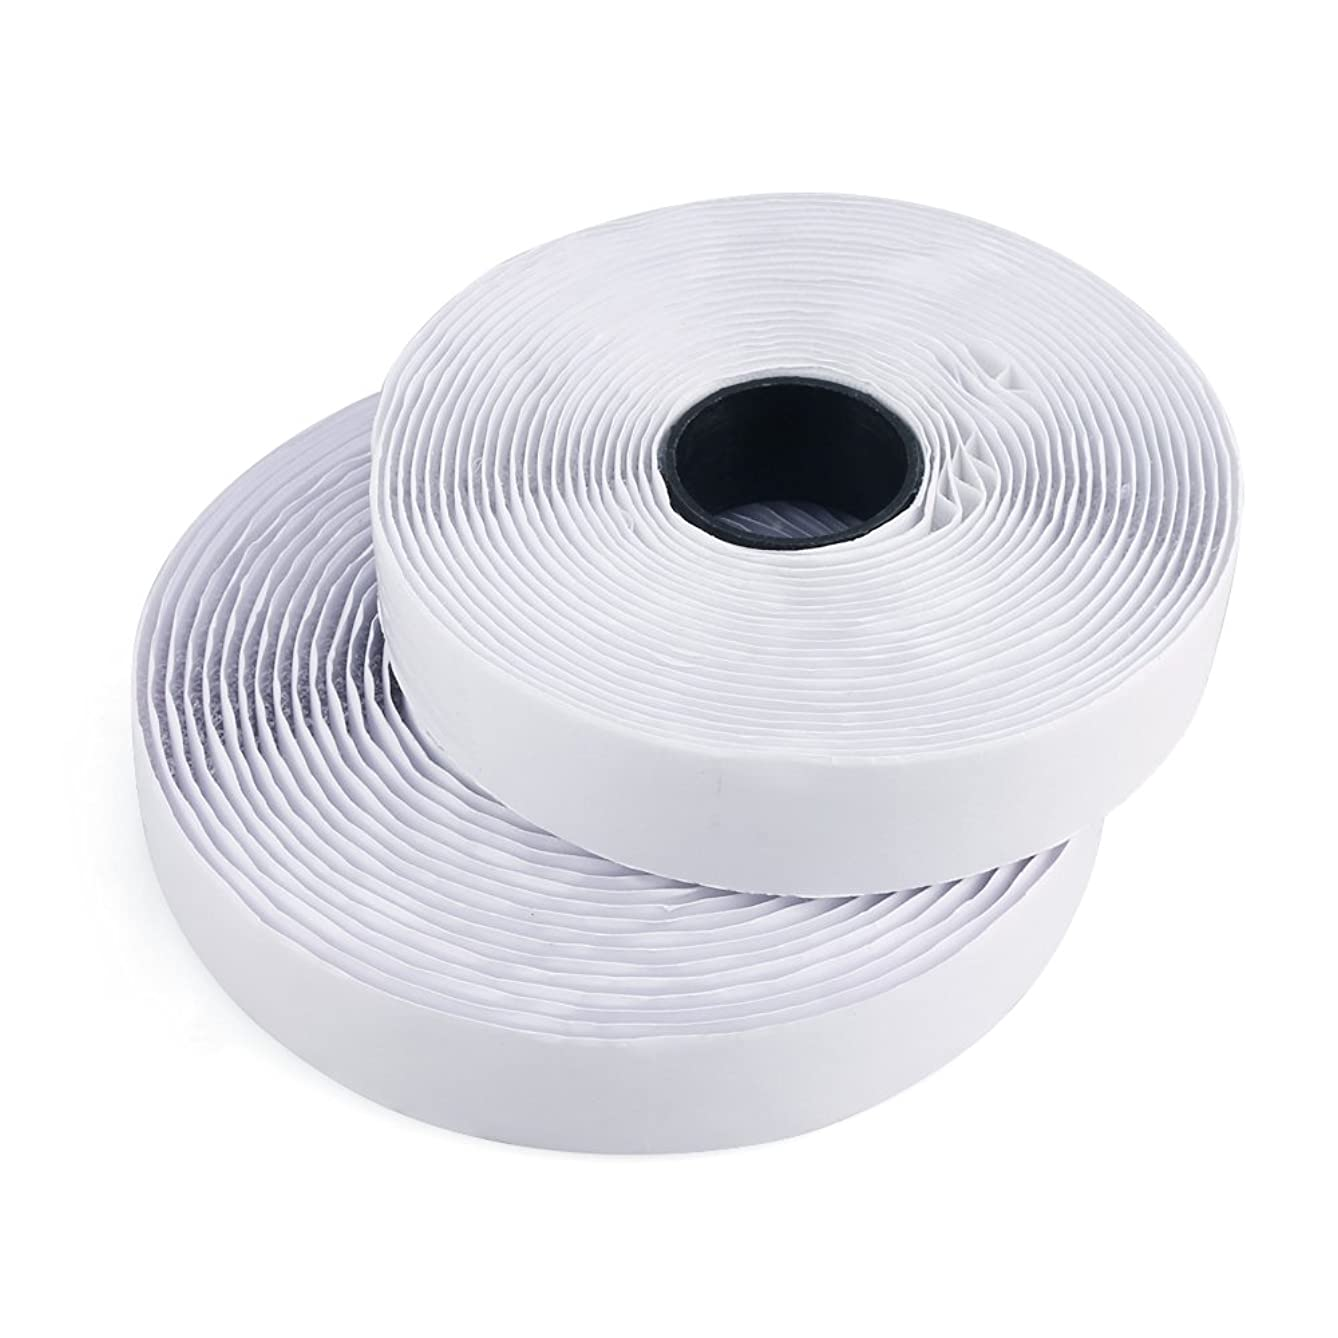 Self Adhesive Tape Self Adhesive Hook and Loop Sticky Back Tape White Reusable Fabric Fastener (16.4 Ft)